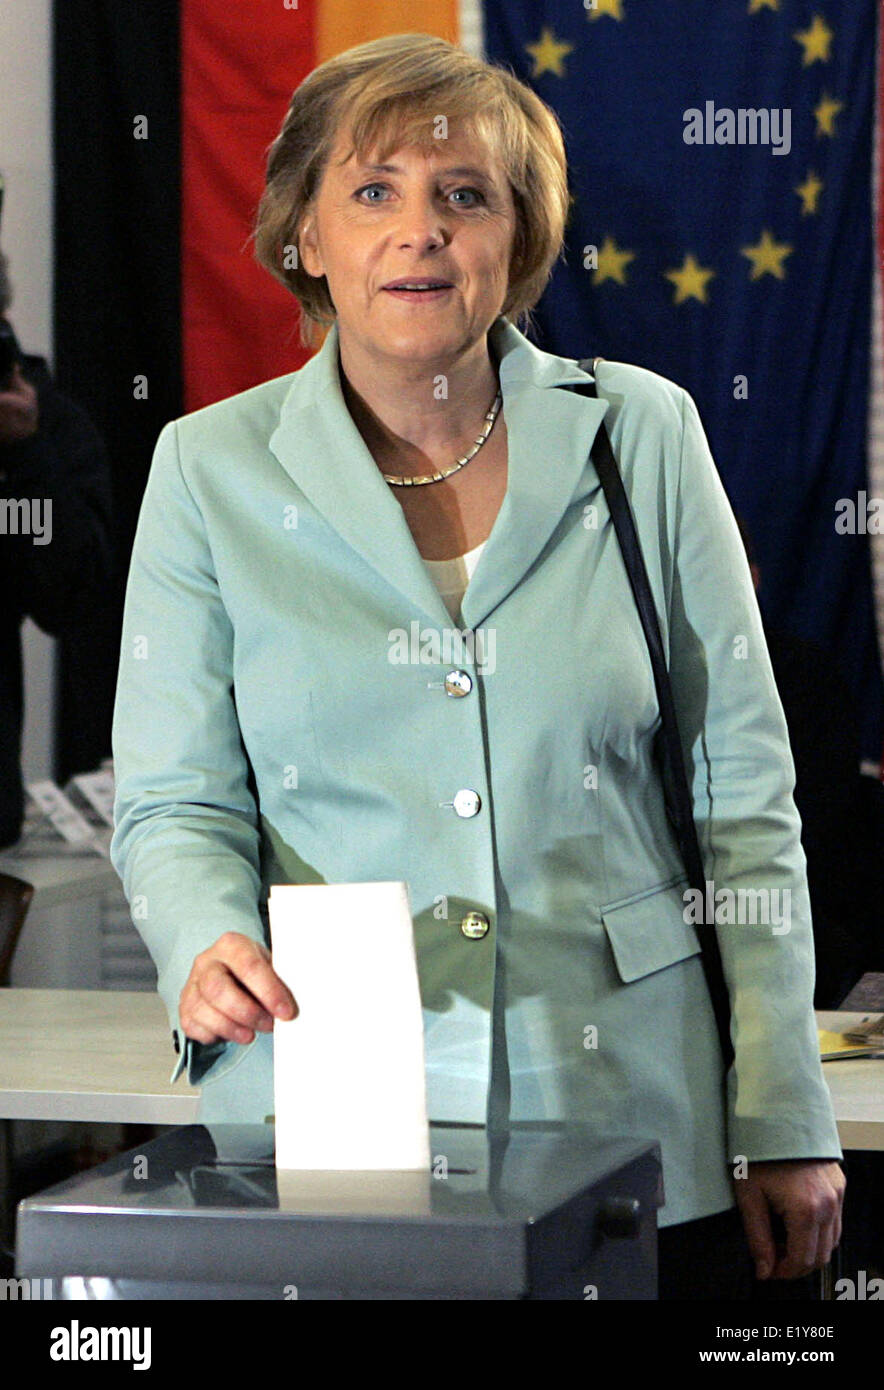 CDU chair woman and candidate for the position of chancellor Angela Merkel casts her vote for the election of Bundestag - Stock Image